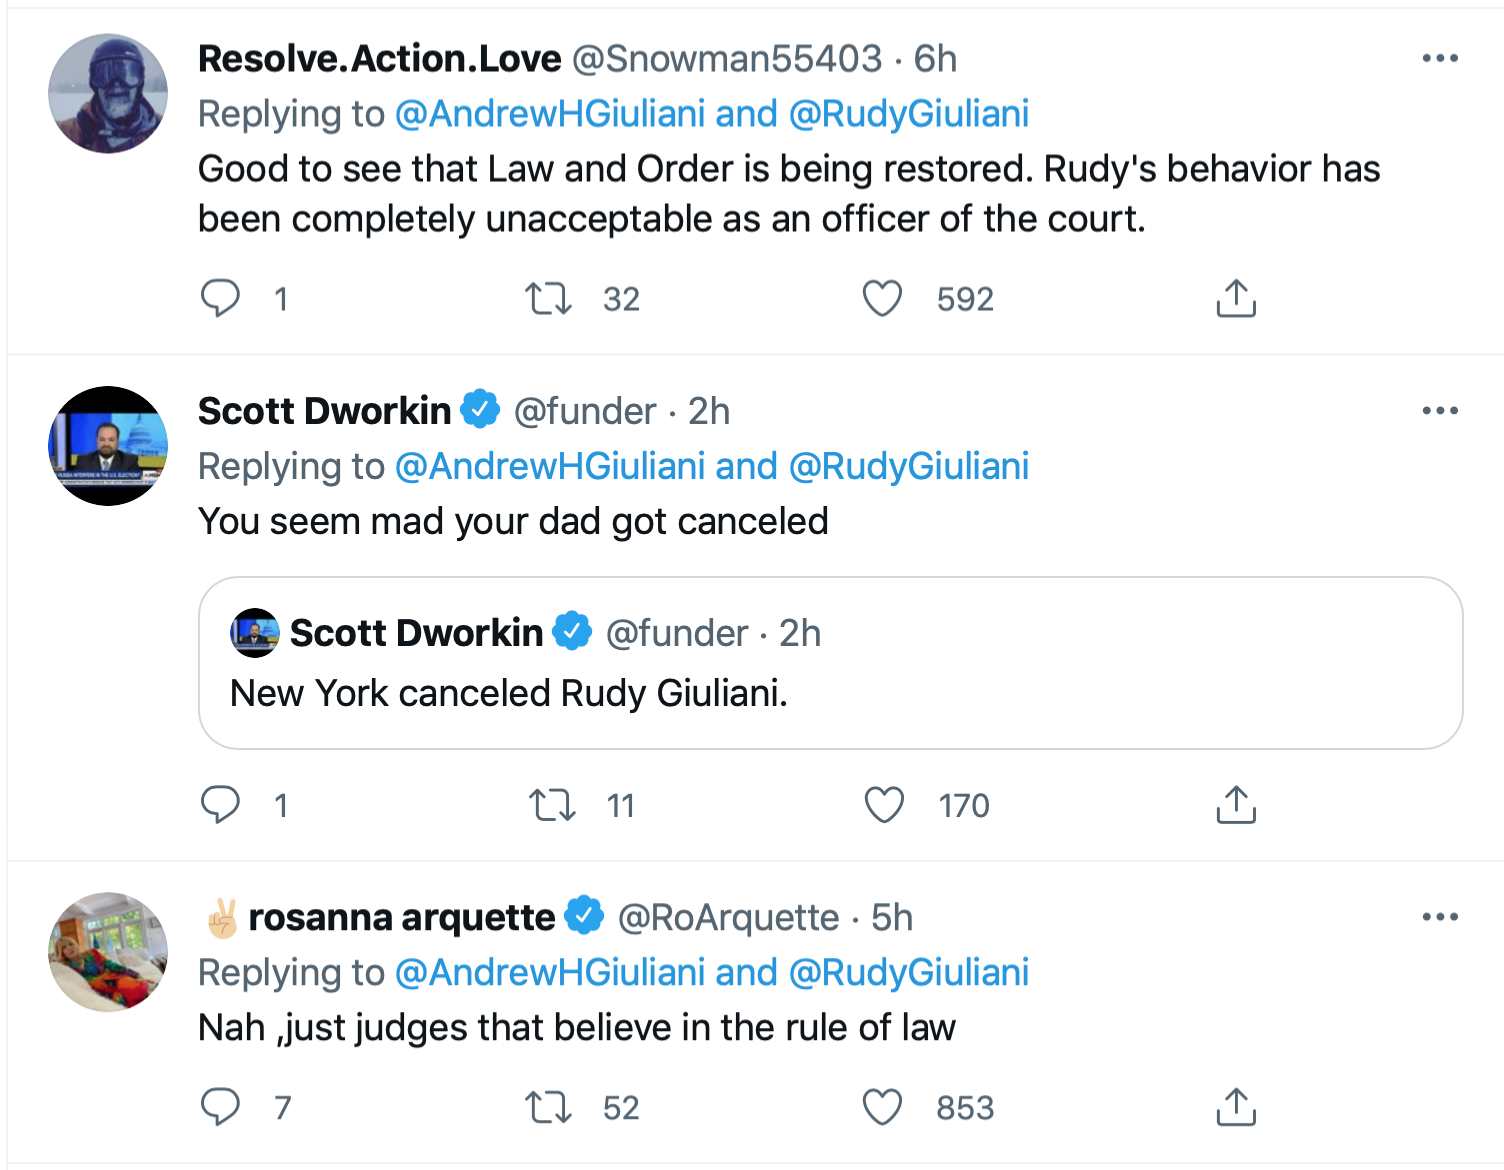 Screen-Shot-2021-06-24-at-7.55.52-PM Giuliani's Son Has Childish Hissy-Fit Over Daddy's Law License Donald Trump Featured Politics Top Stories Twitter